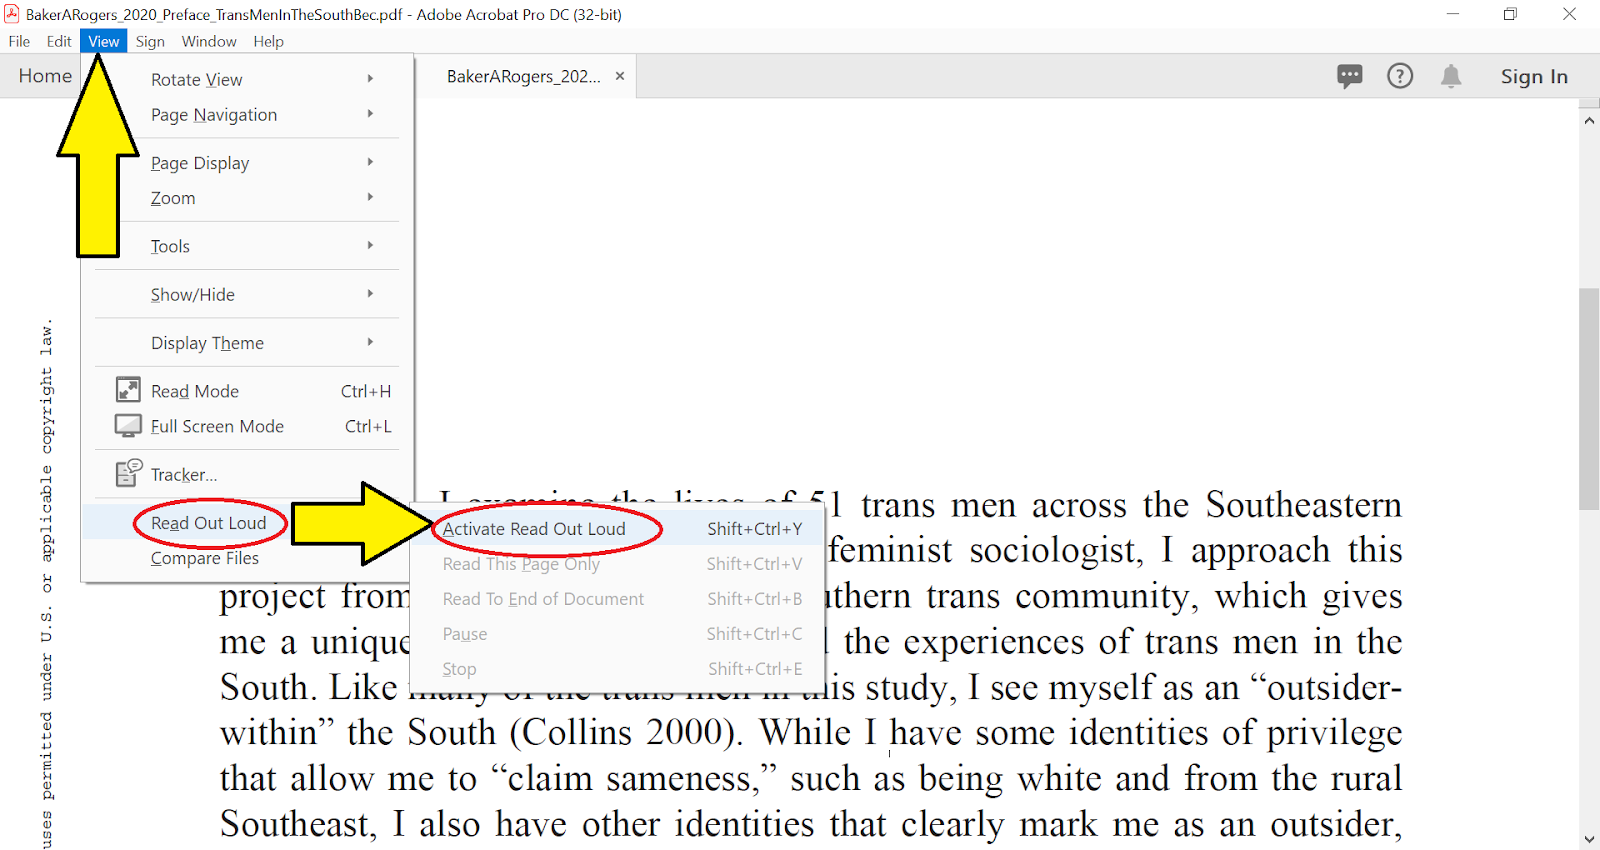 Screenshot of Activating Read Out Loud in Adobe Acrobat DC.